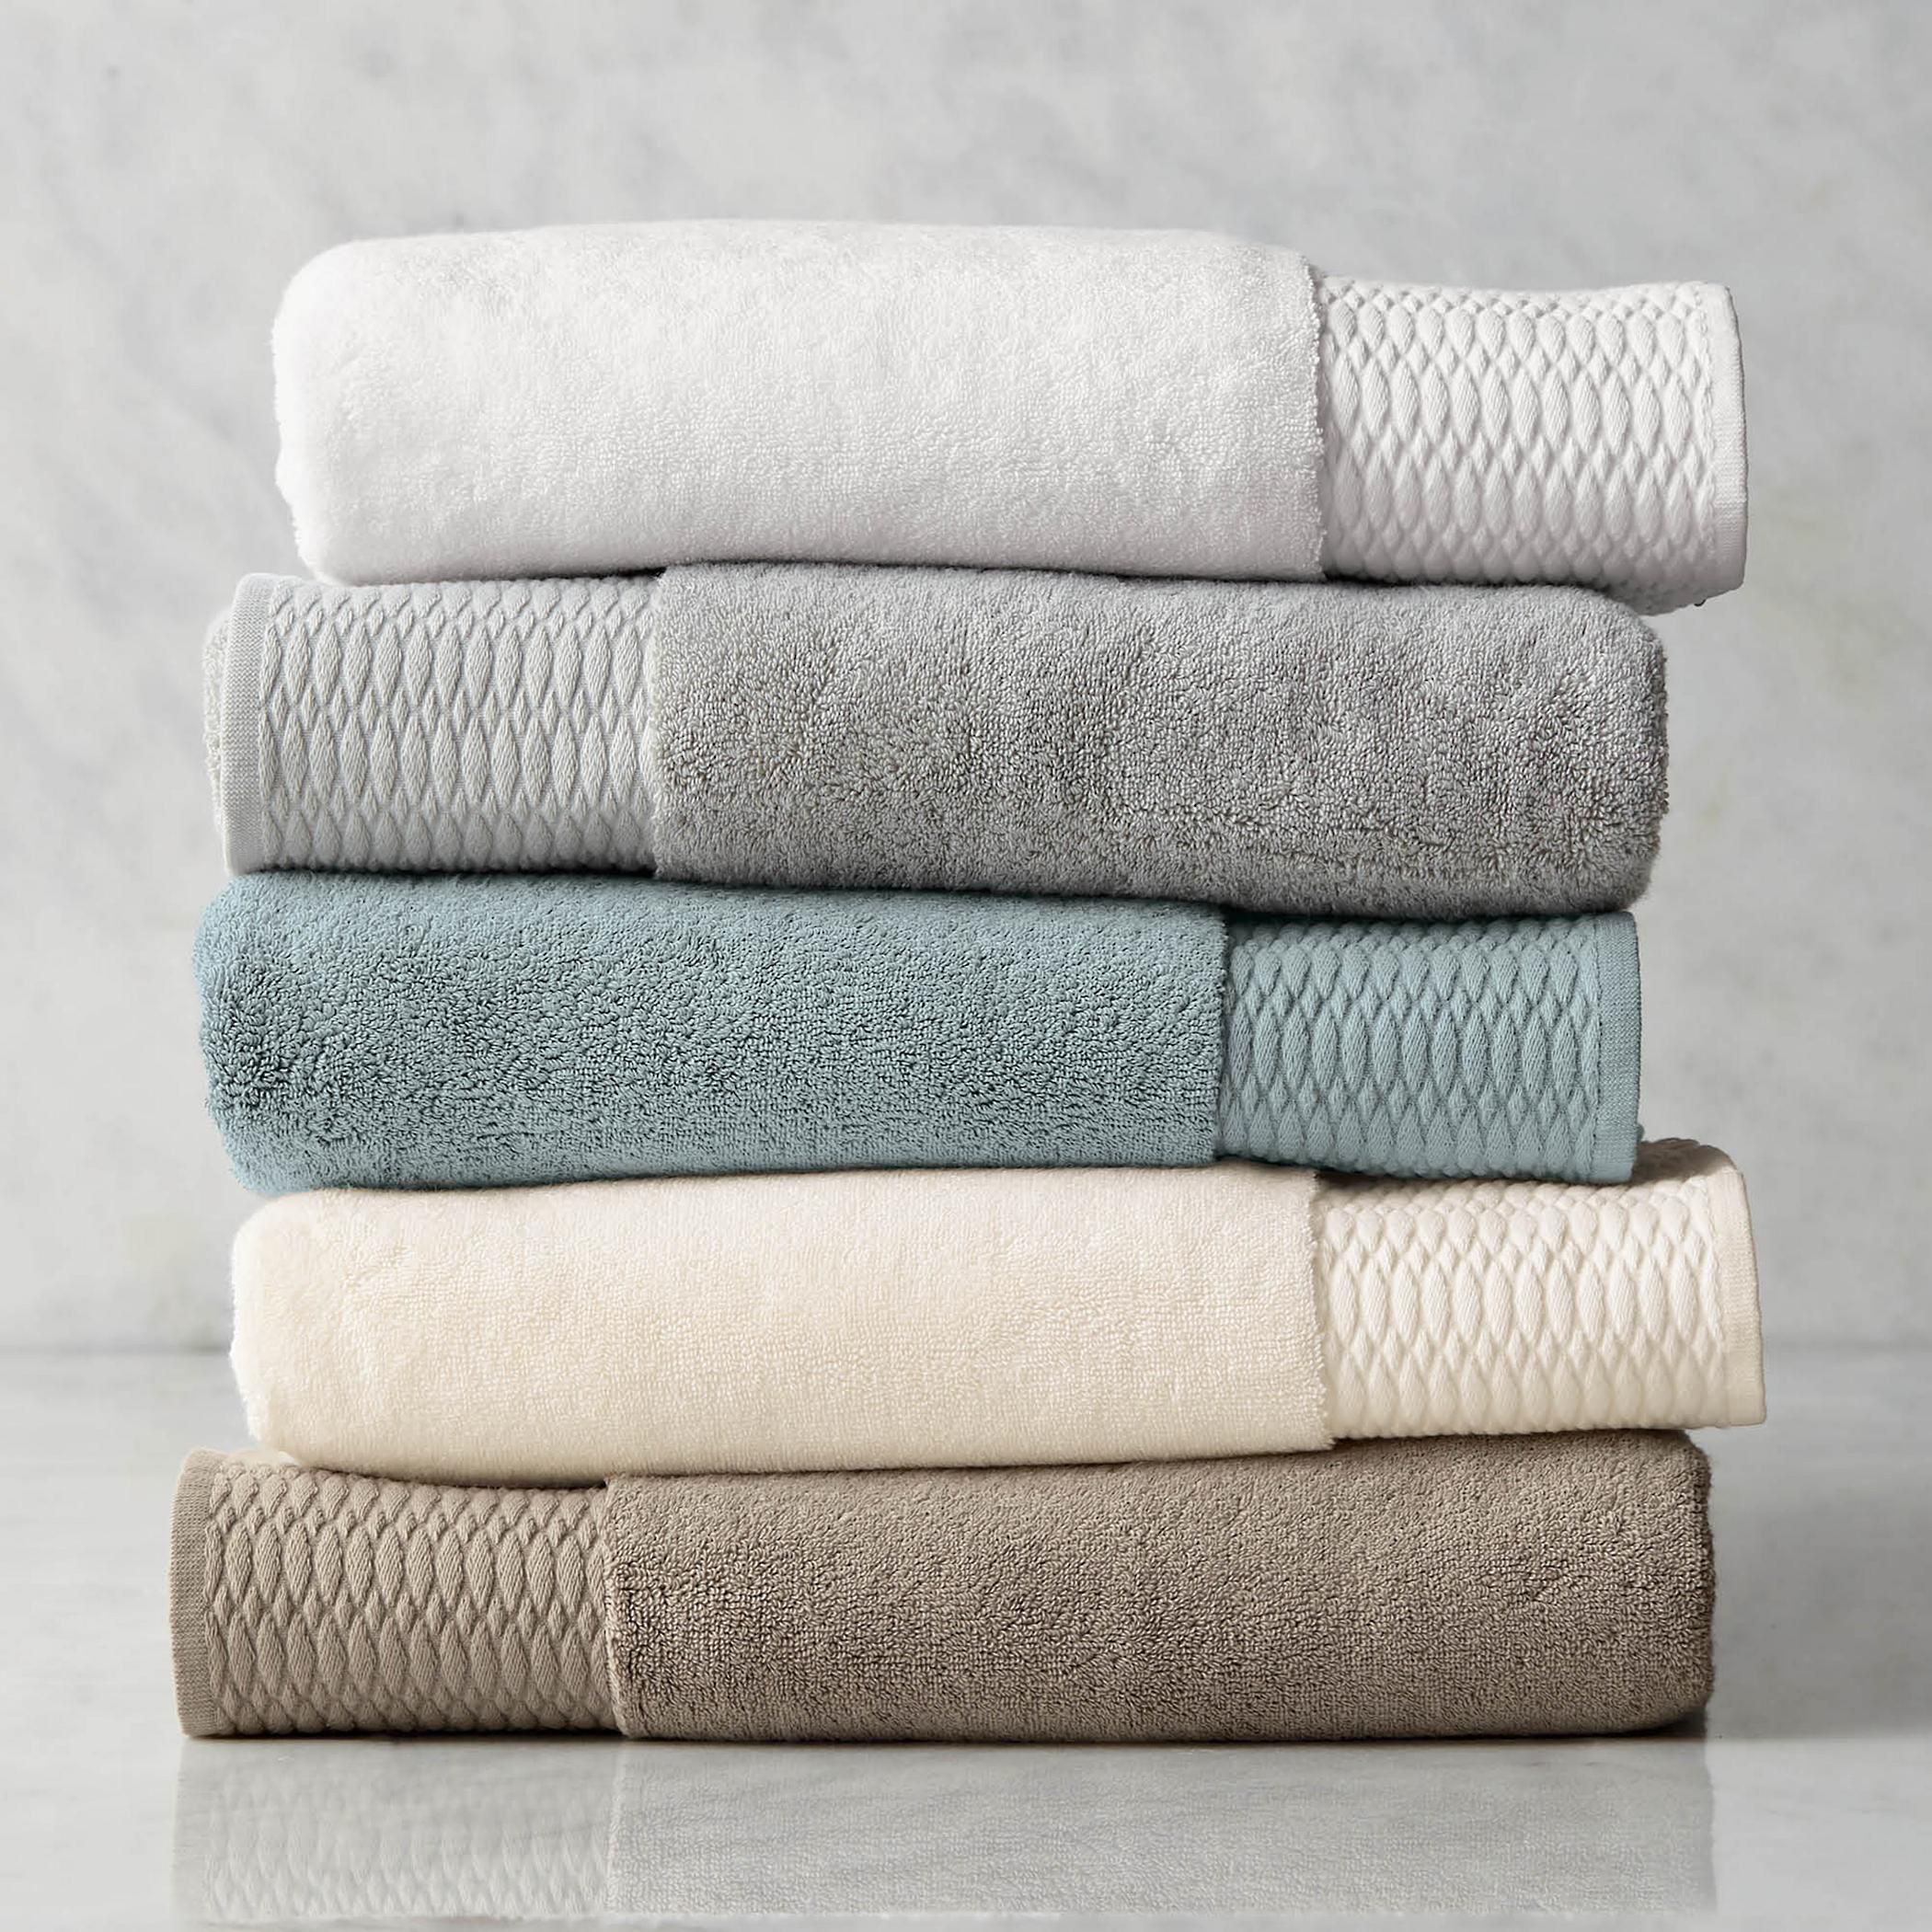 Everything You Need To Know About Buying Bath Towels